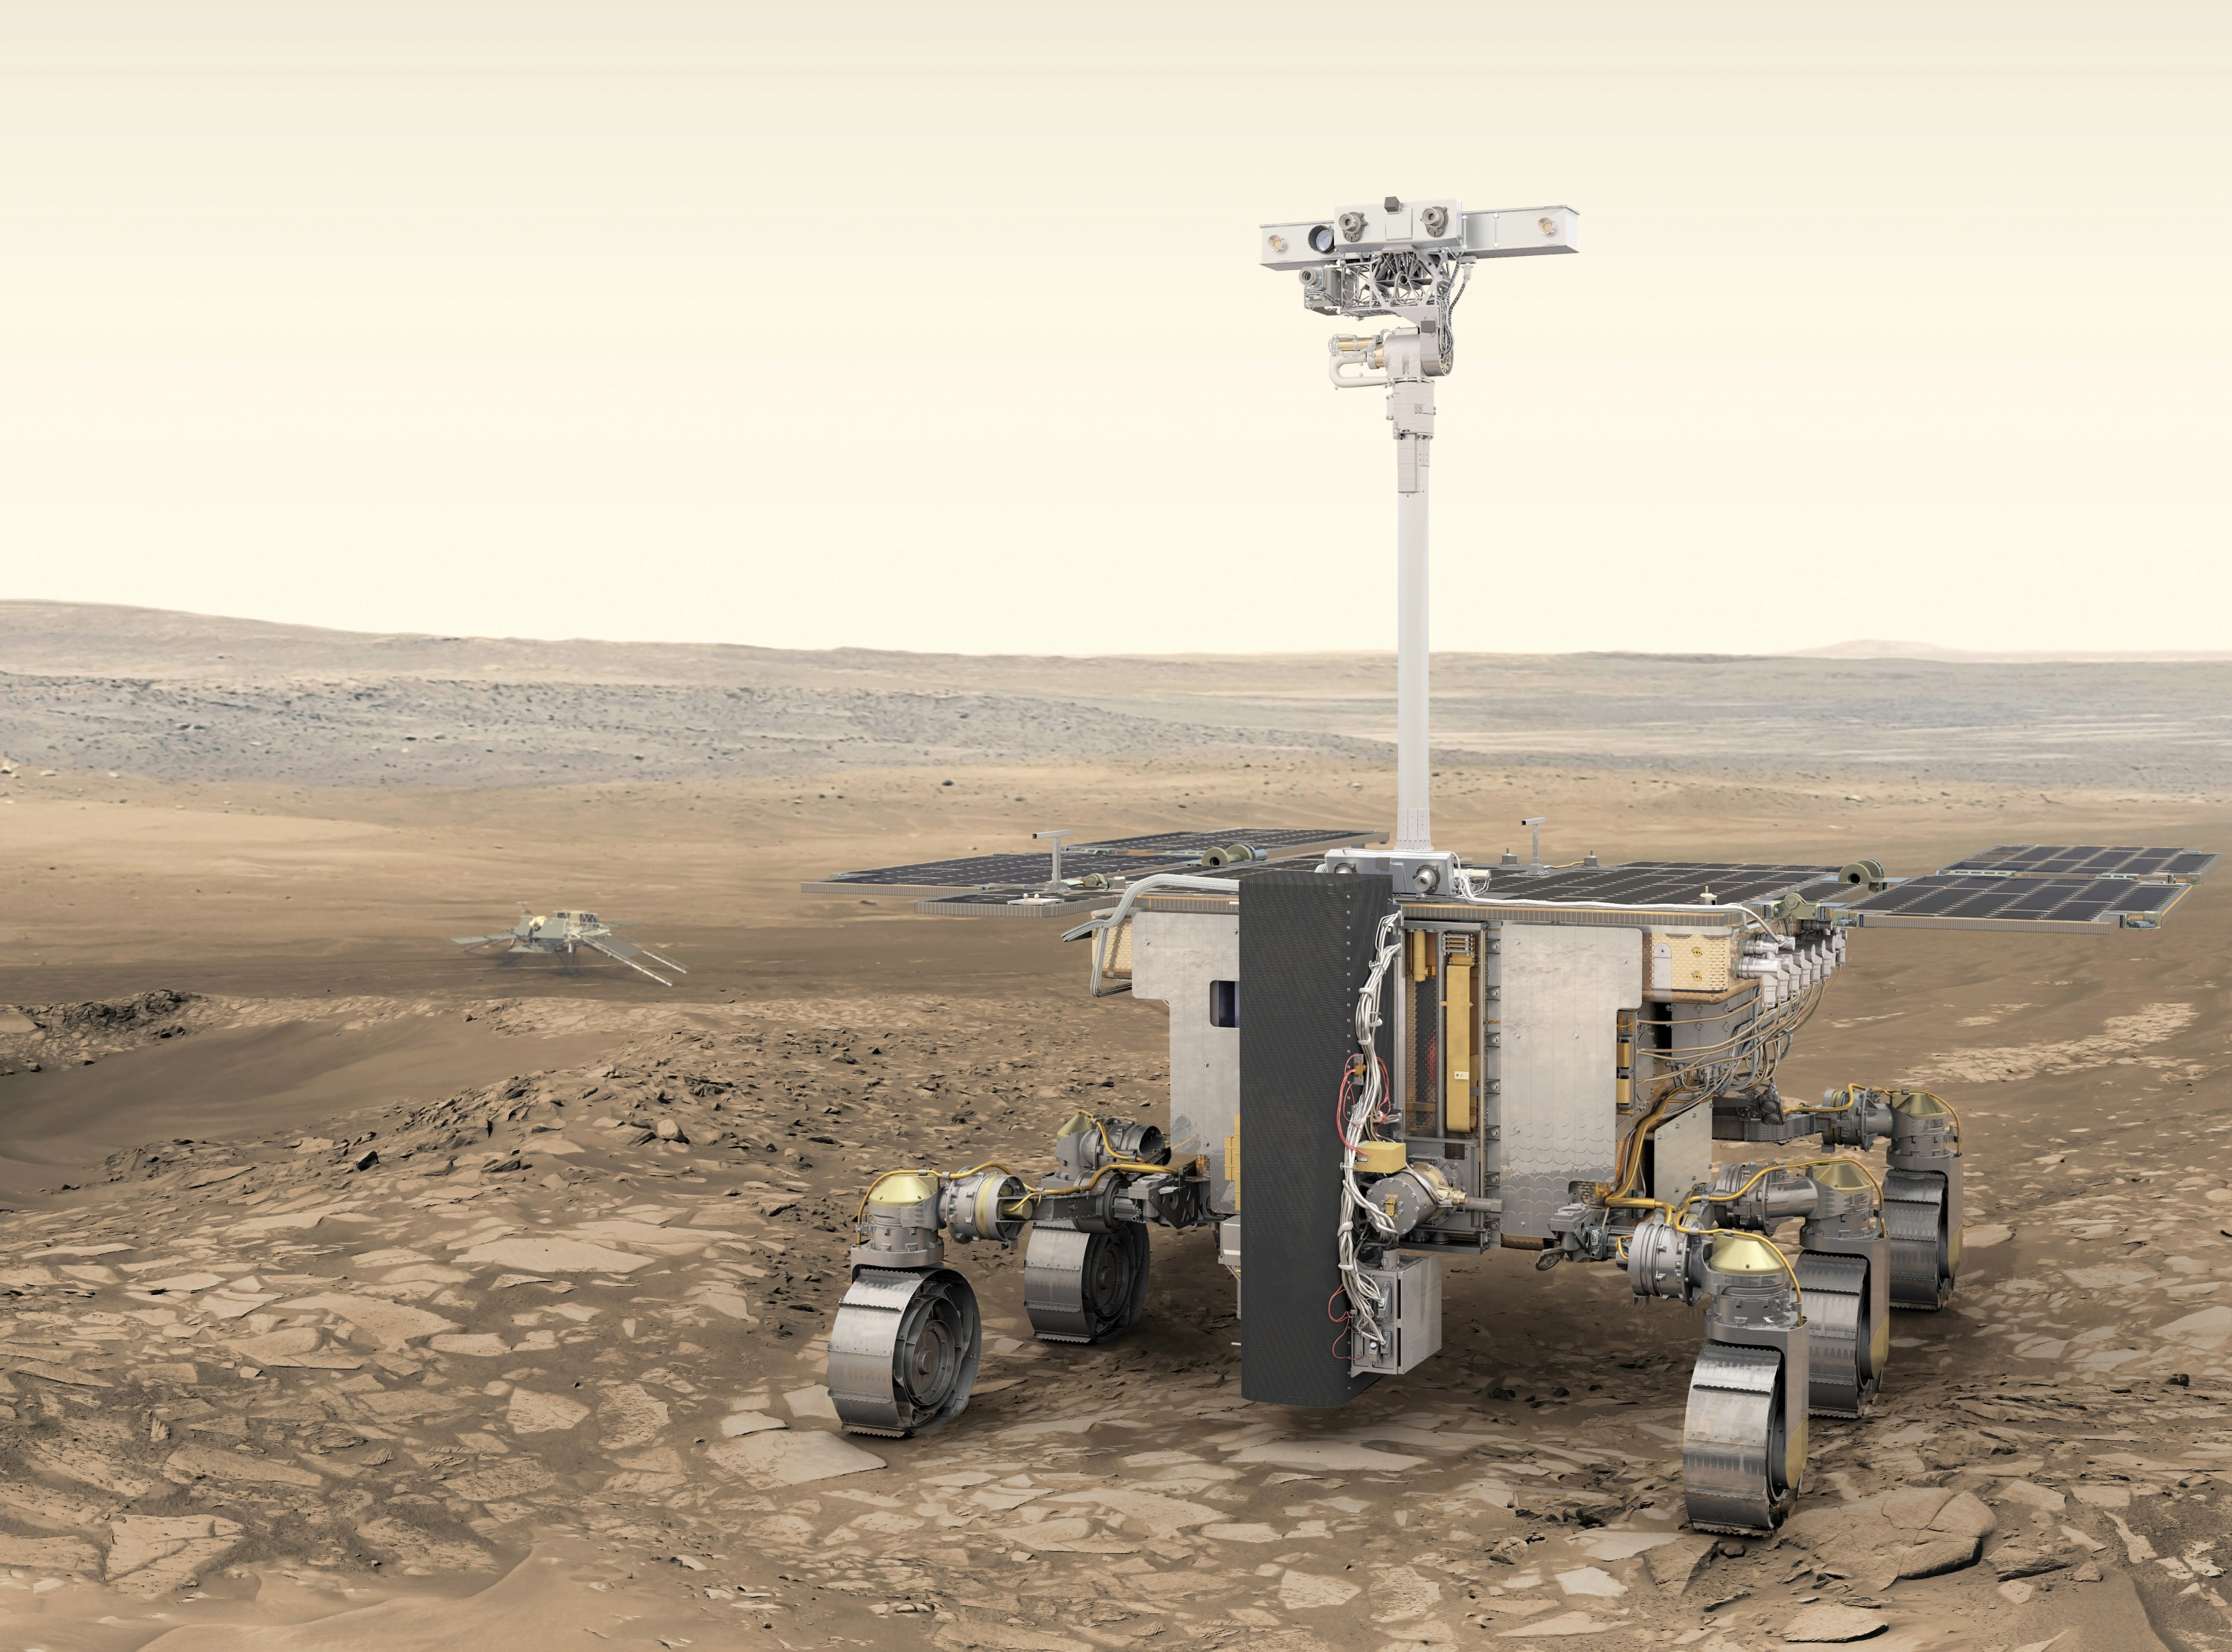 Esa Shows Off Sweet New Renders Of The Exomars 2020 Rover Techcrunch Infrared Video A Hovering Nasa Lander Heres Big Version